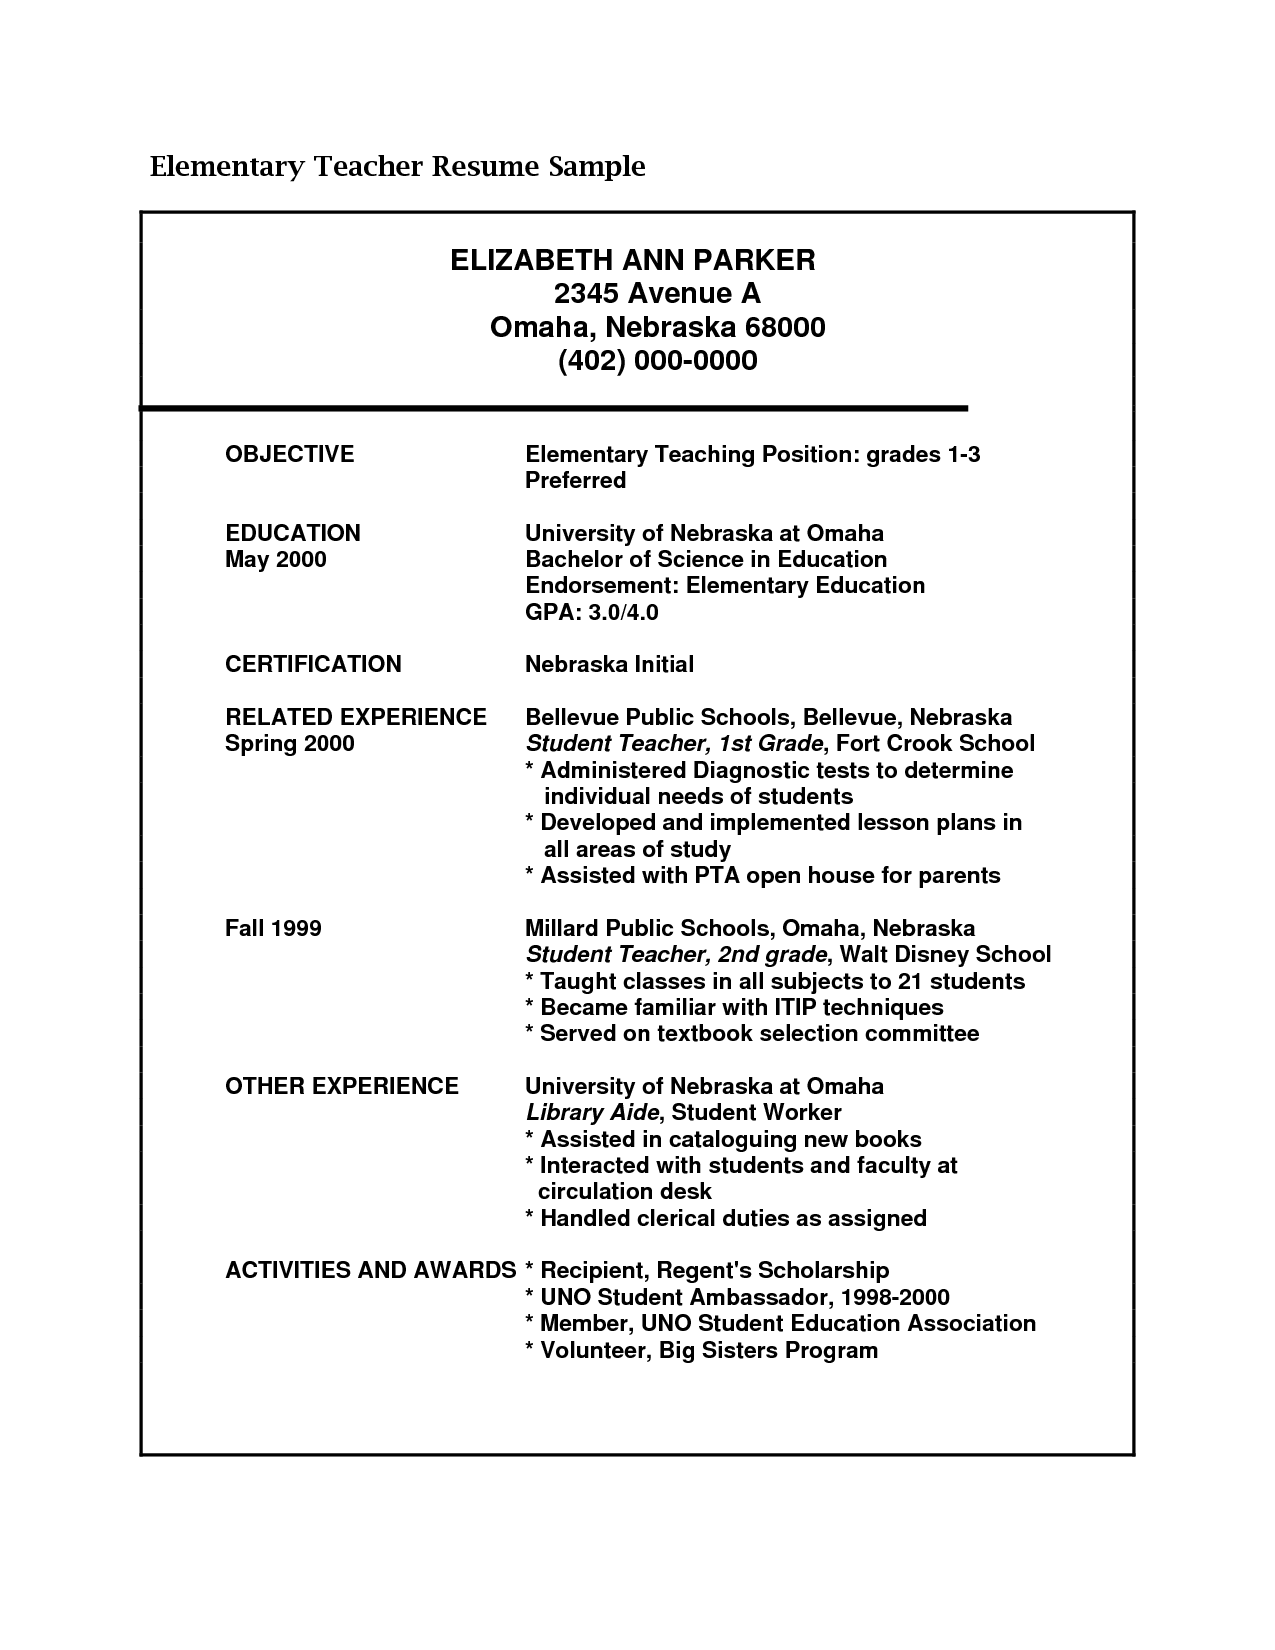 Admin Teacher Resume Examples,,elementary teacher resume examples ...